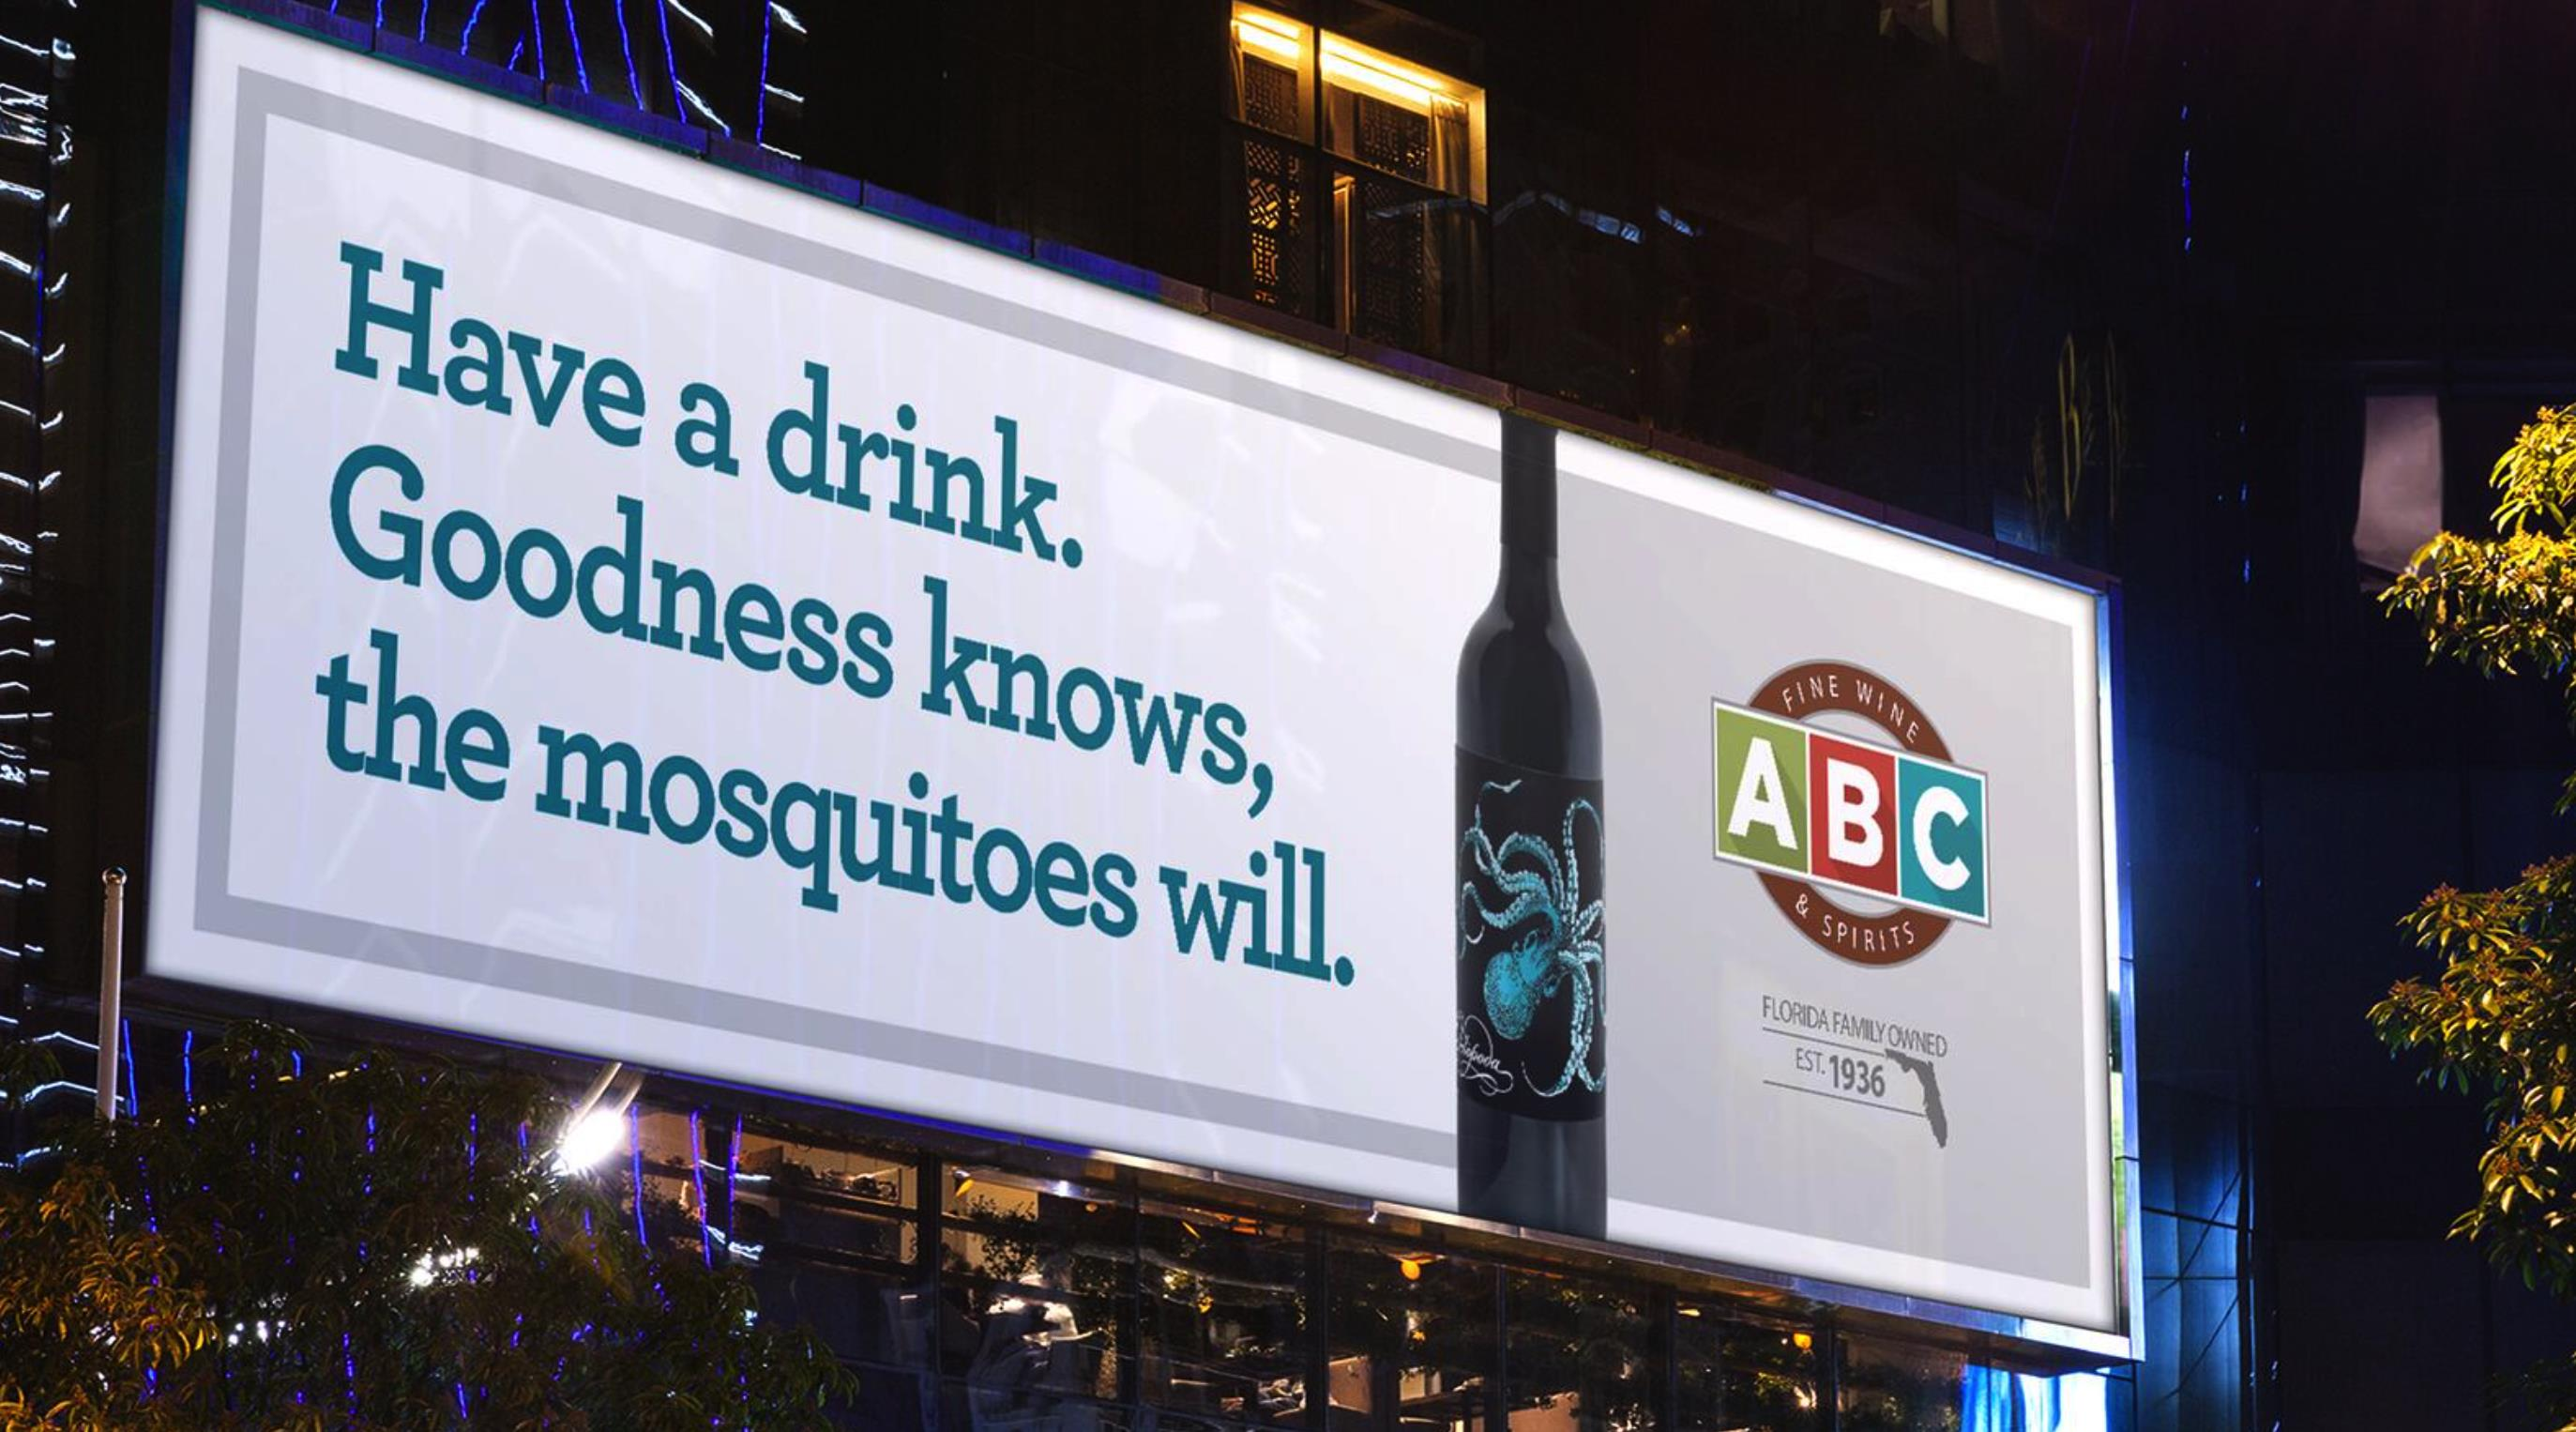 ABC Fine Wine & Spirits: Always Be Celebrating